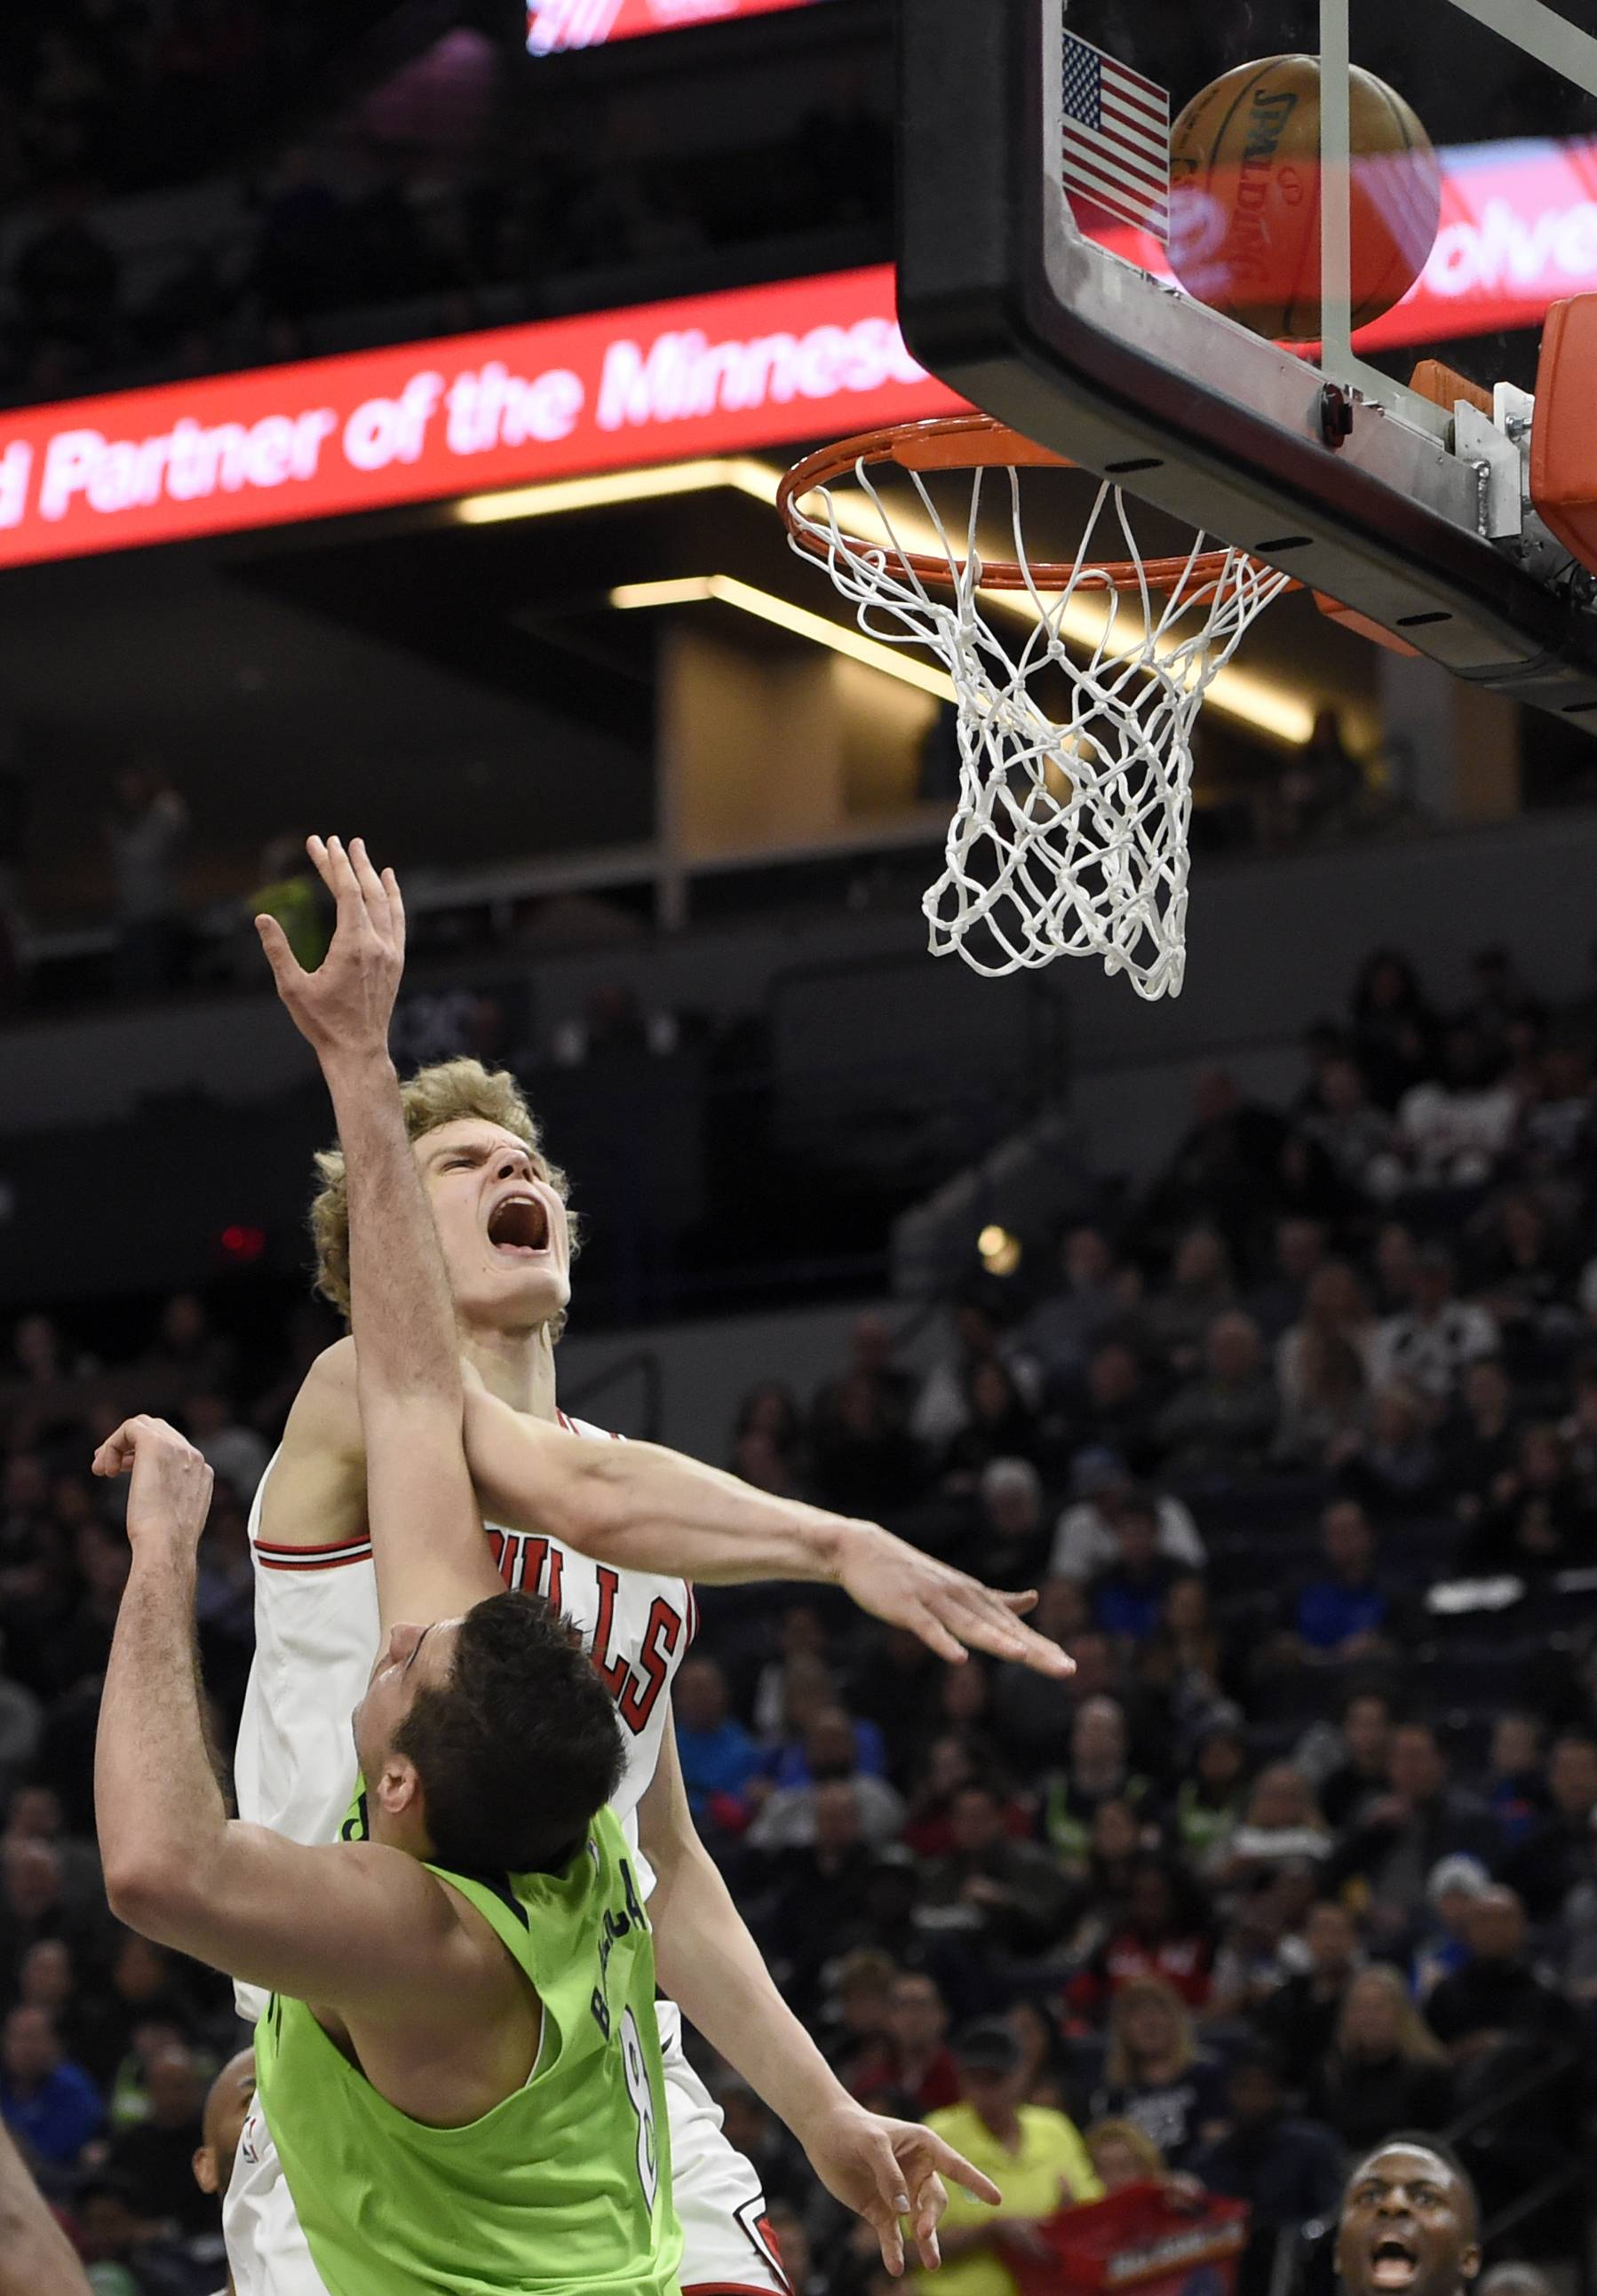 Markkanen's slump, poor starts -- Bulls' revised lineup has problems